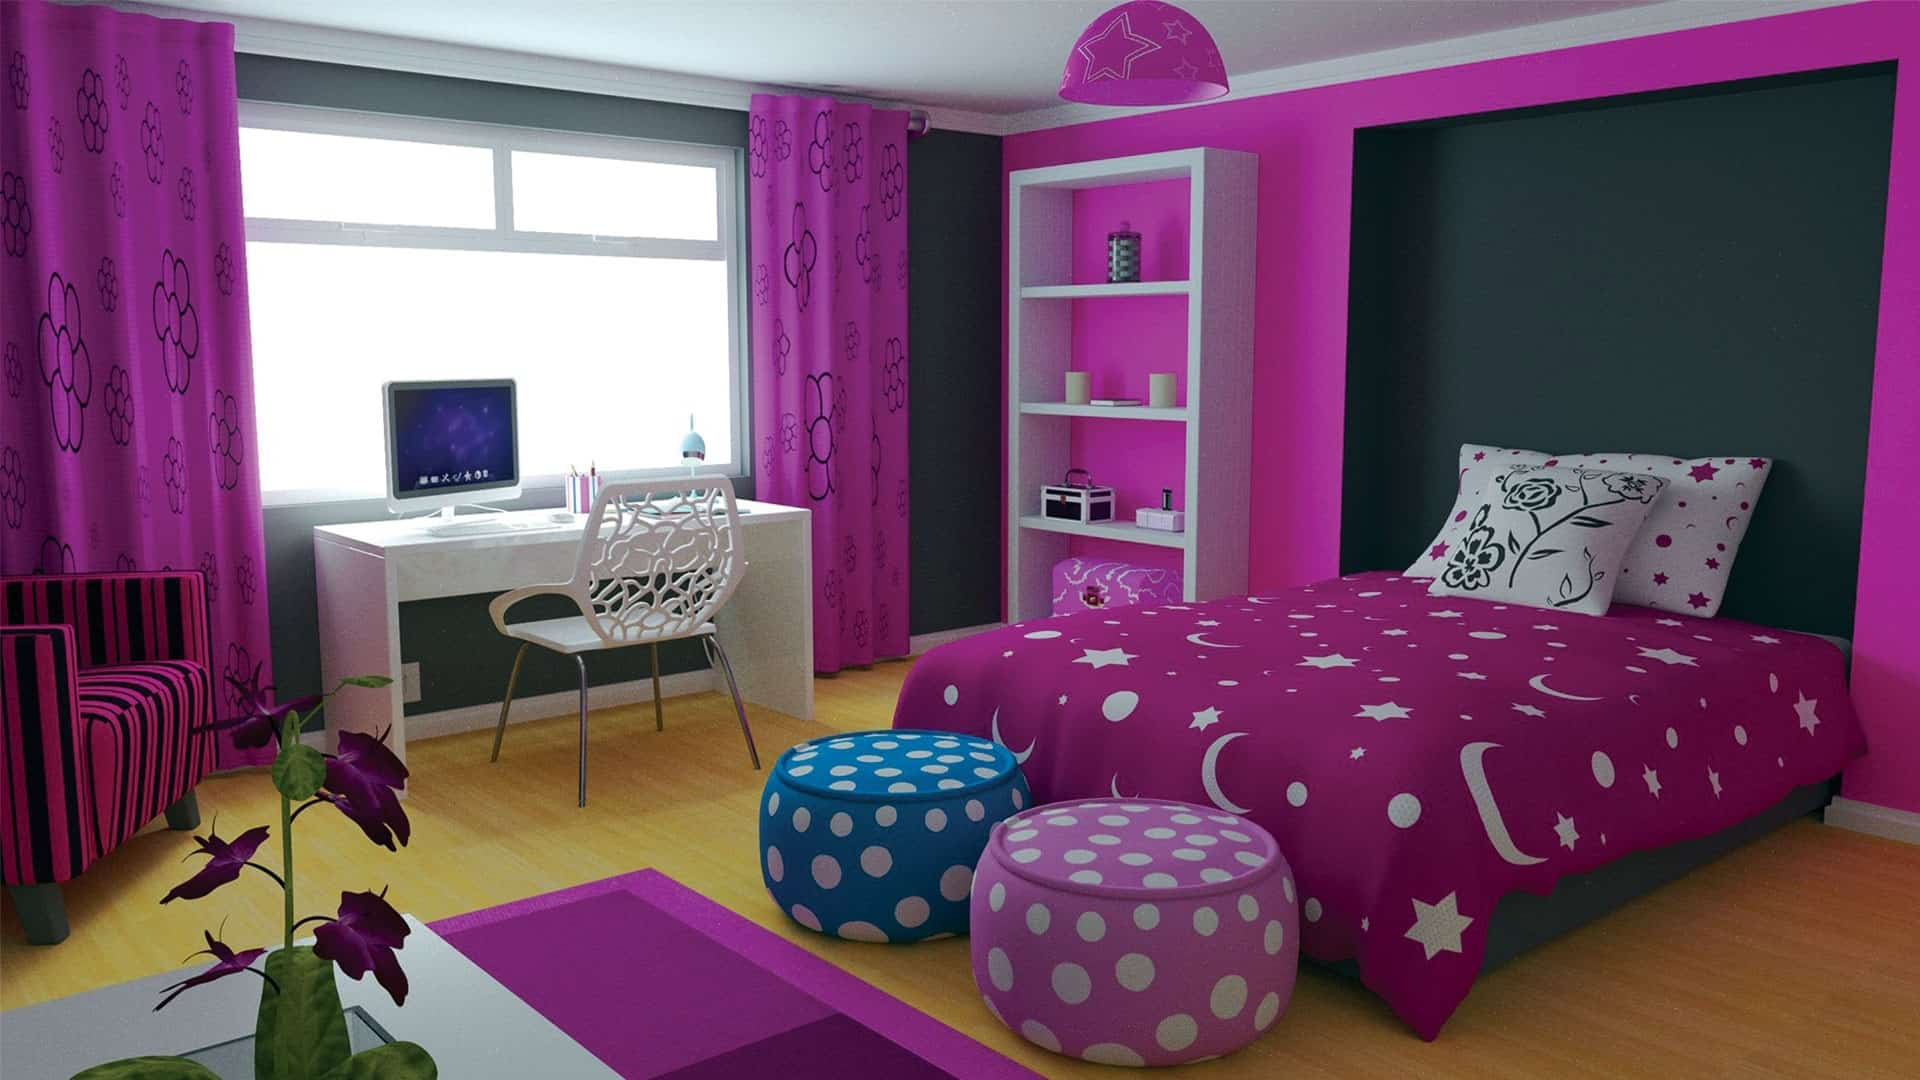 Home decor trends 2017 purple teen room for Bedroom ideas for girls